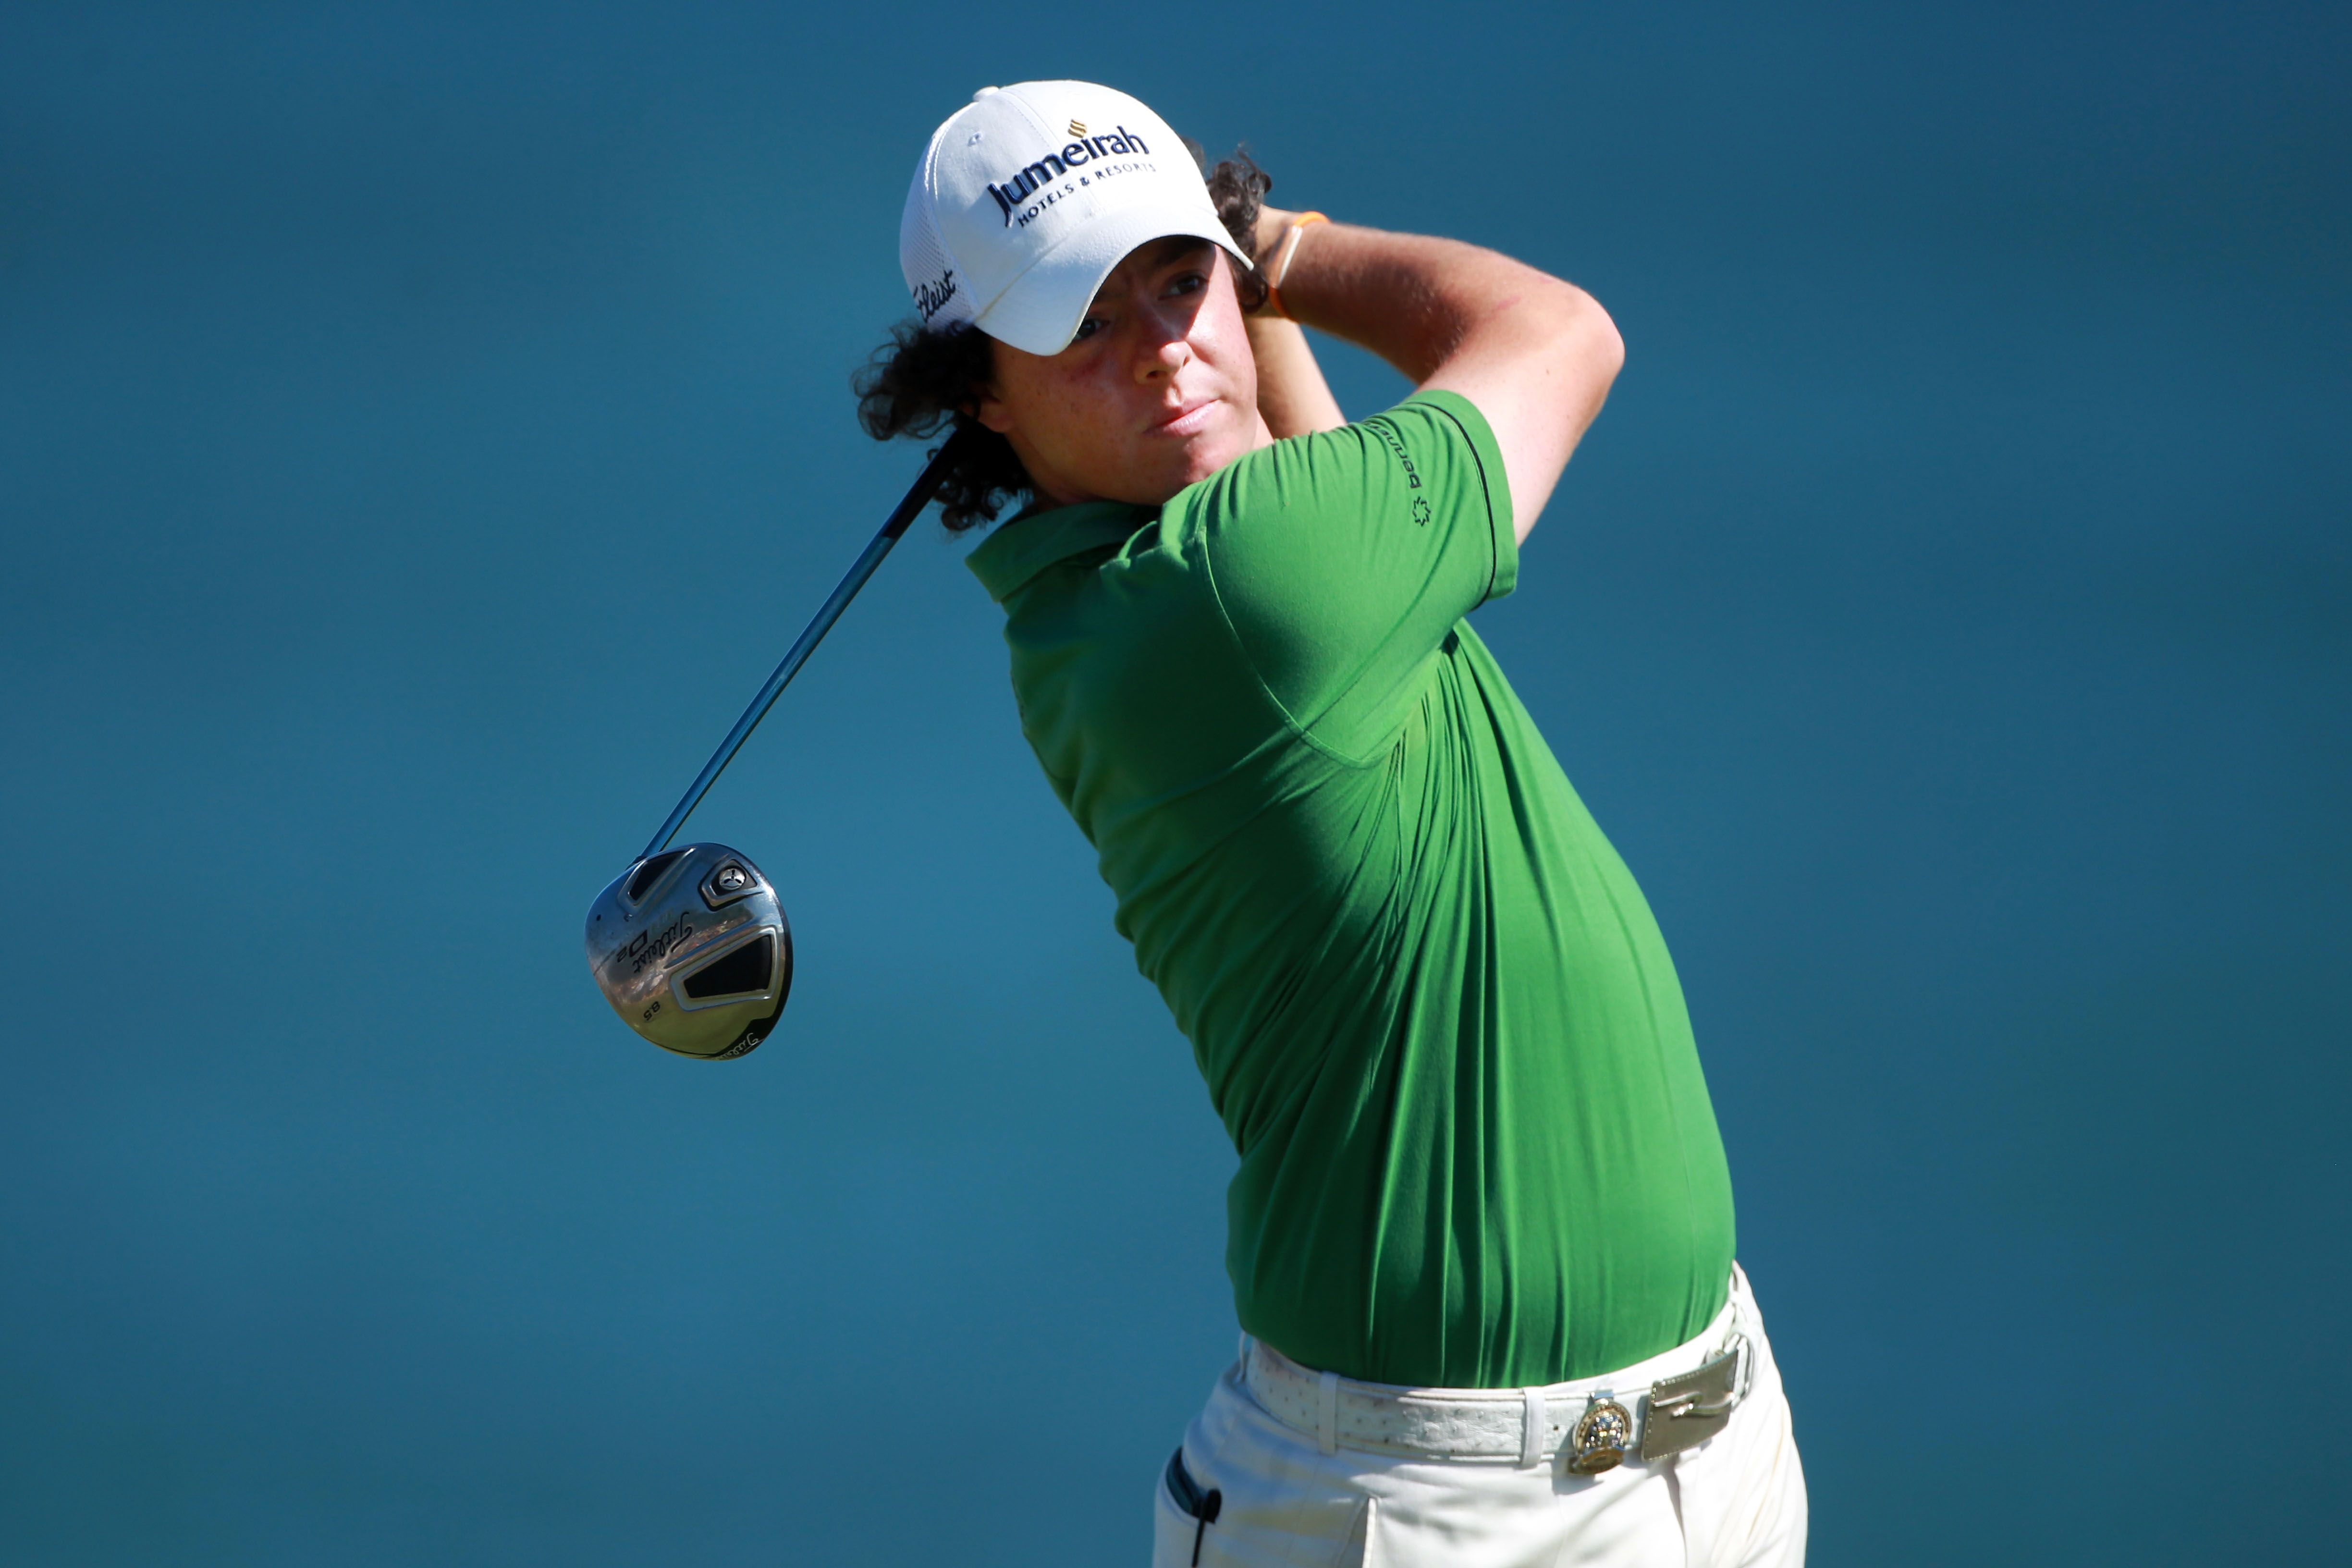 KOHLER, WI - AUGUST 15:  Rory McIlroy of Northern Ireland plays his tee shot on the ninth hole during the final round of the 92nd PGA Championship on the Straits Course at Whistling Straits on August 15, 2010 in Kohler, Wisconsin.  (Photo by Andrew Reding